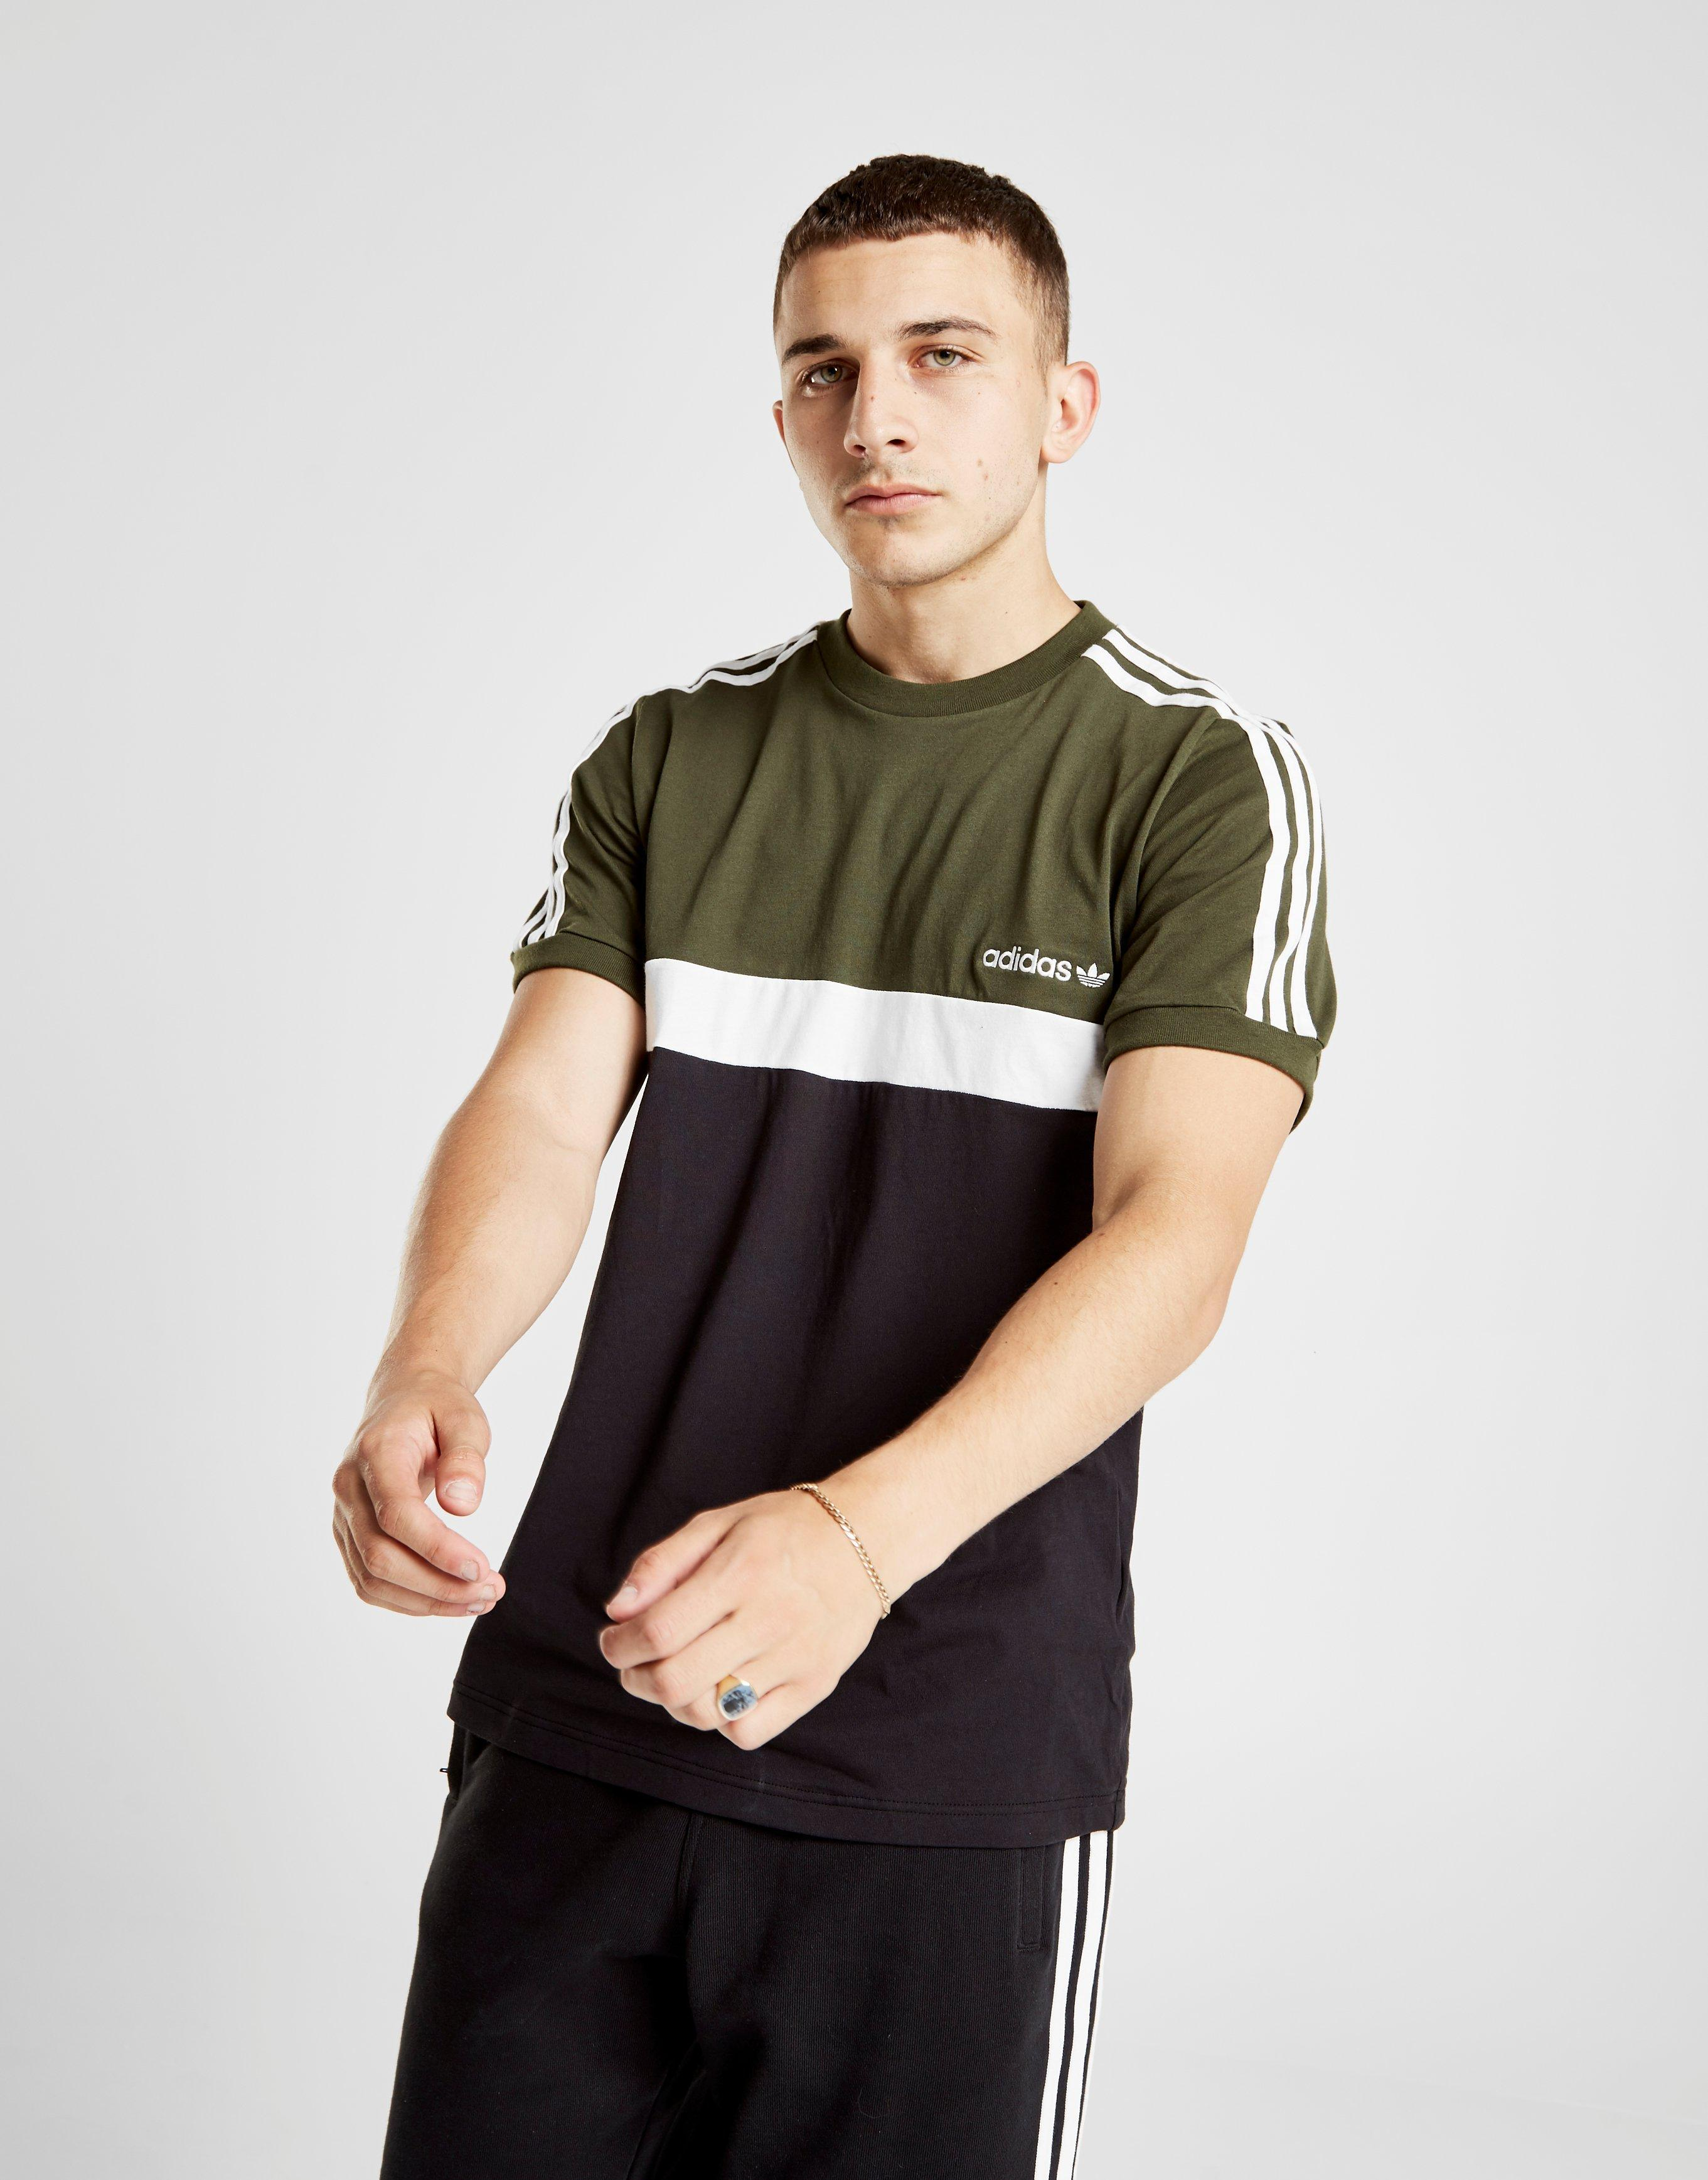 shirt Voor Color Zwart Originals Lyst T Itasca Block In Adidas Heren QCxBtsdhro